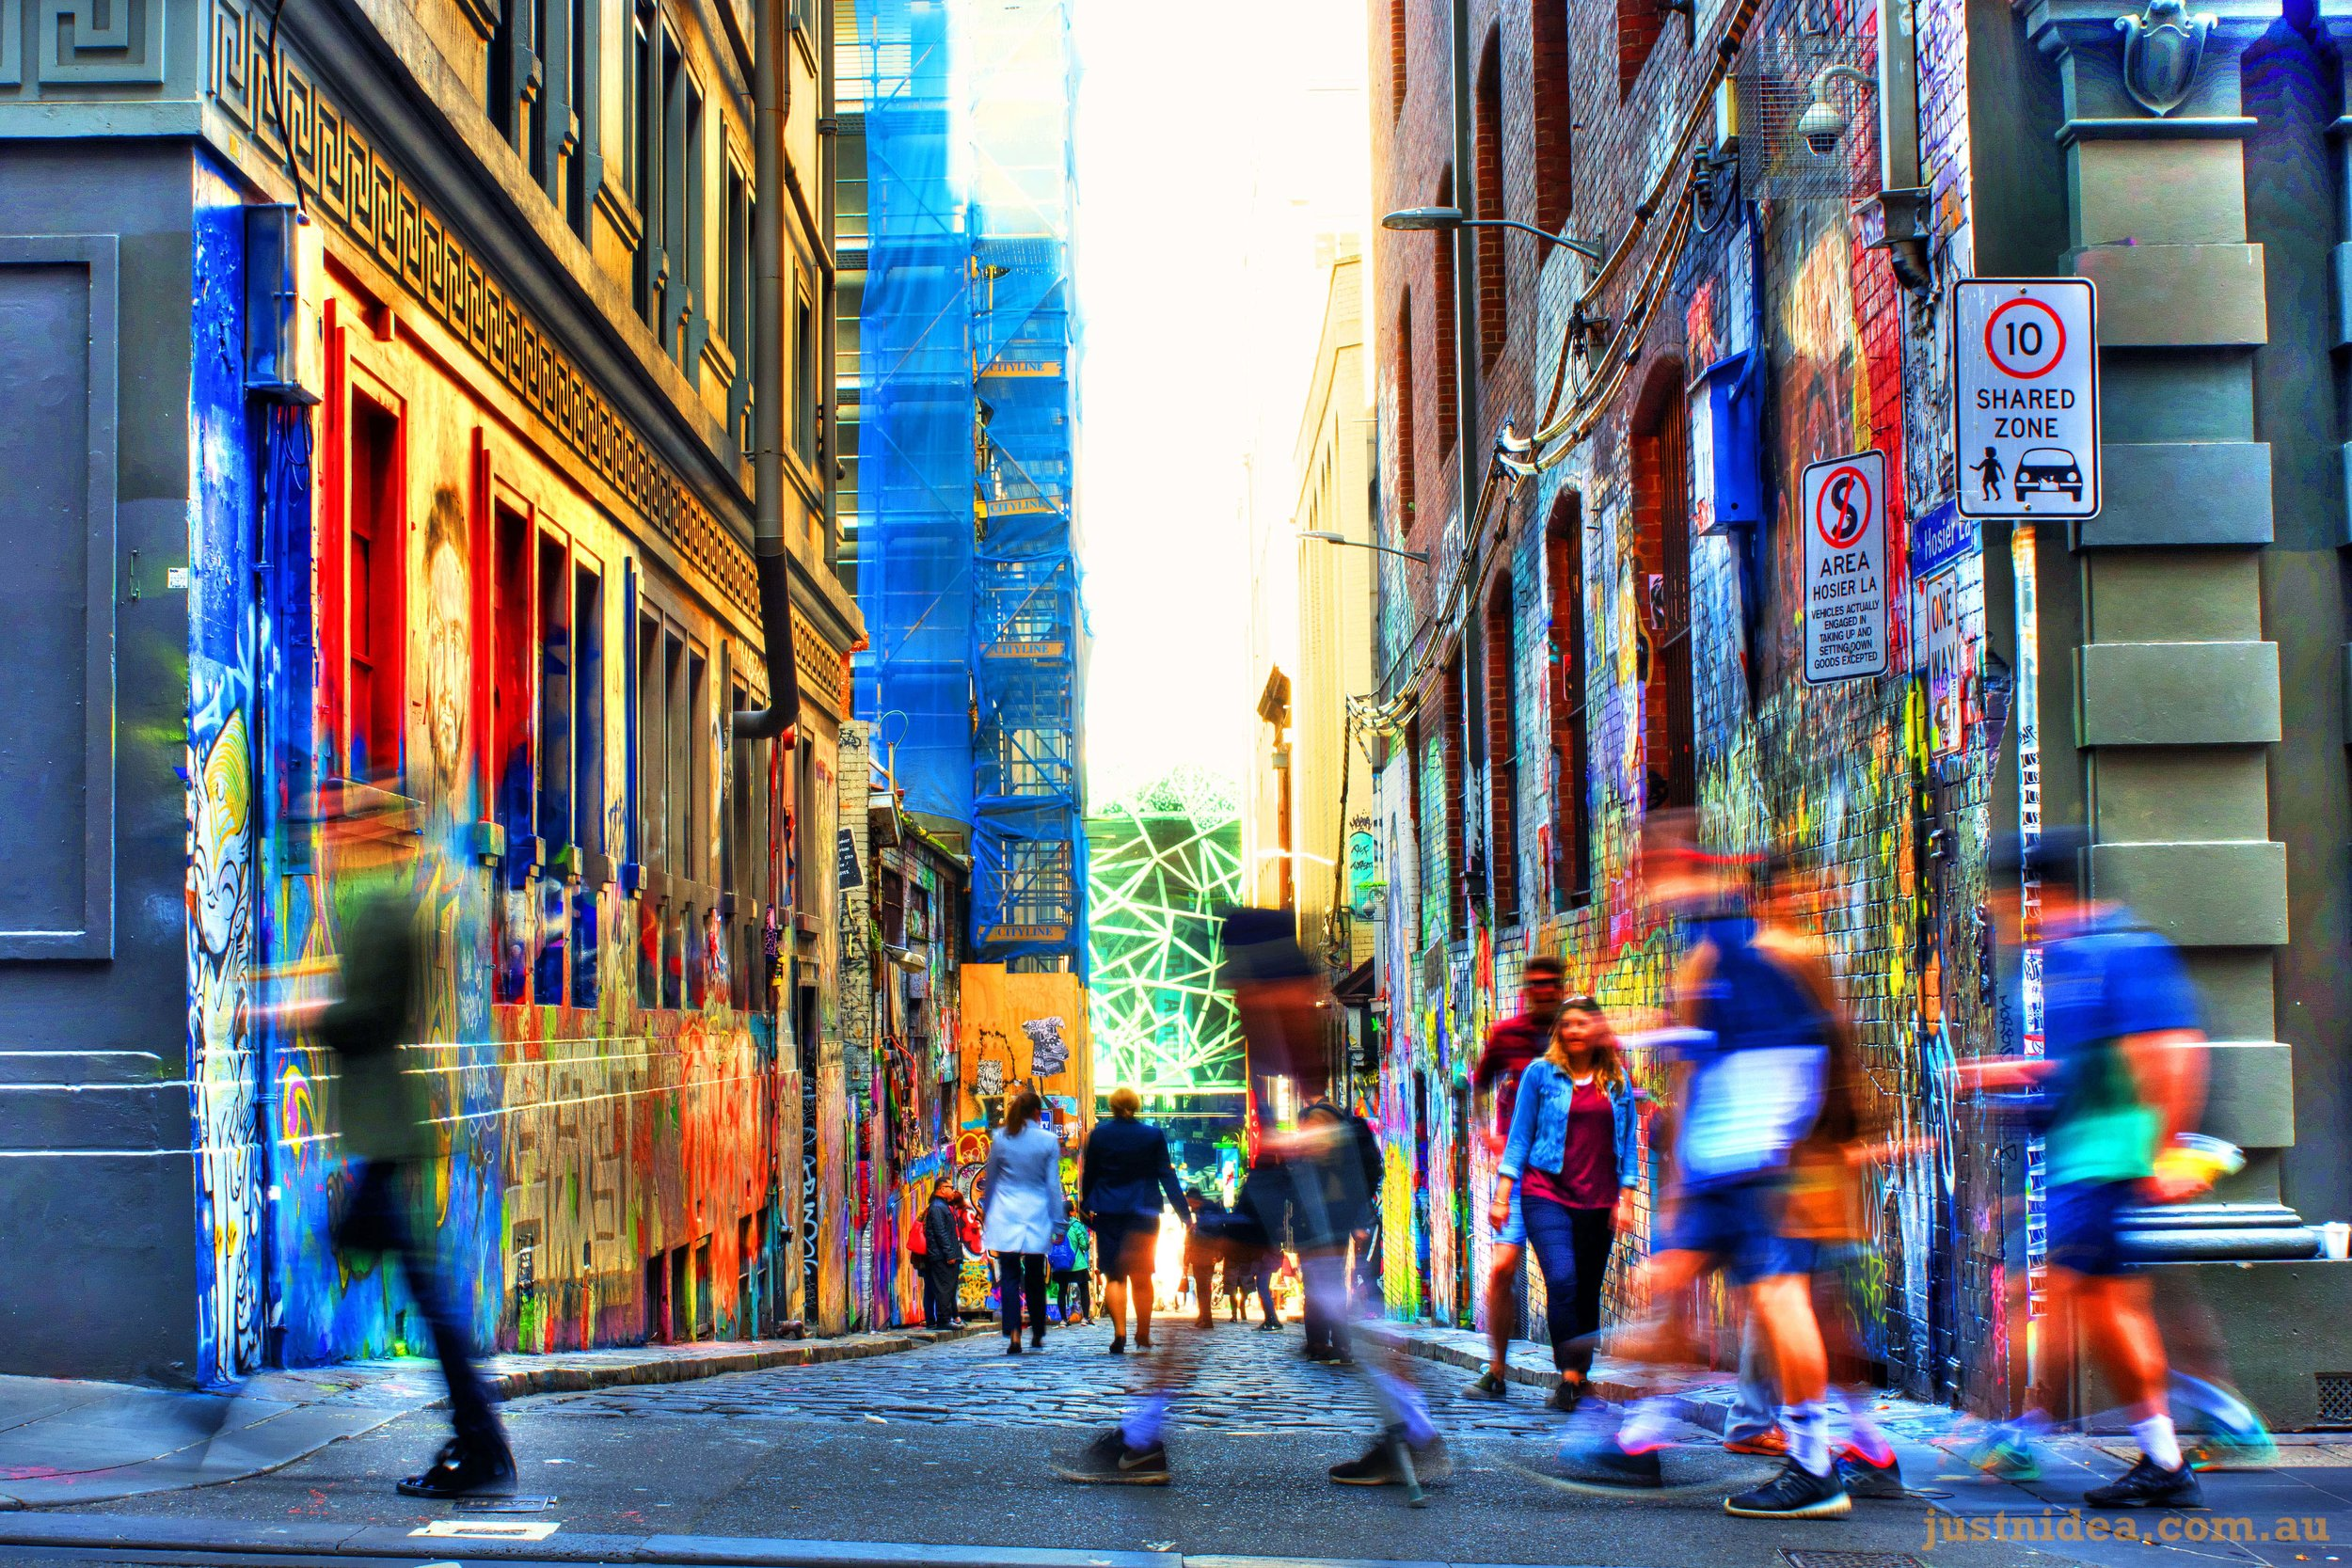 StreetscapeMelbourneJust_n_Idea.jpg